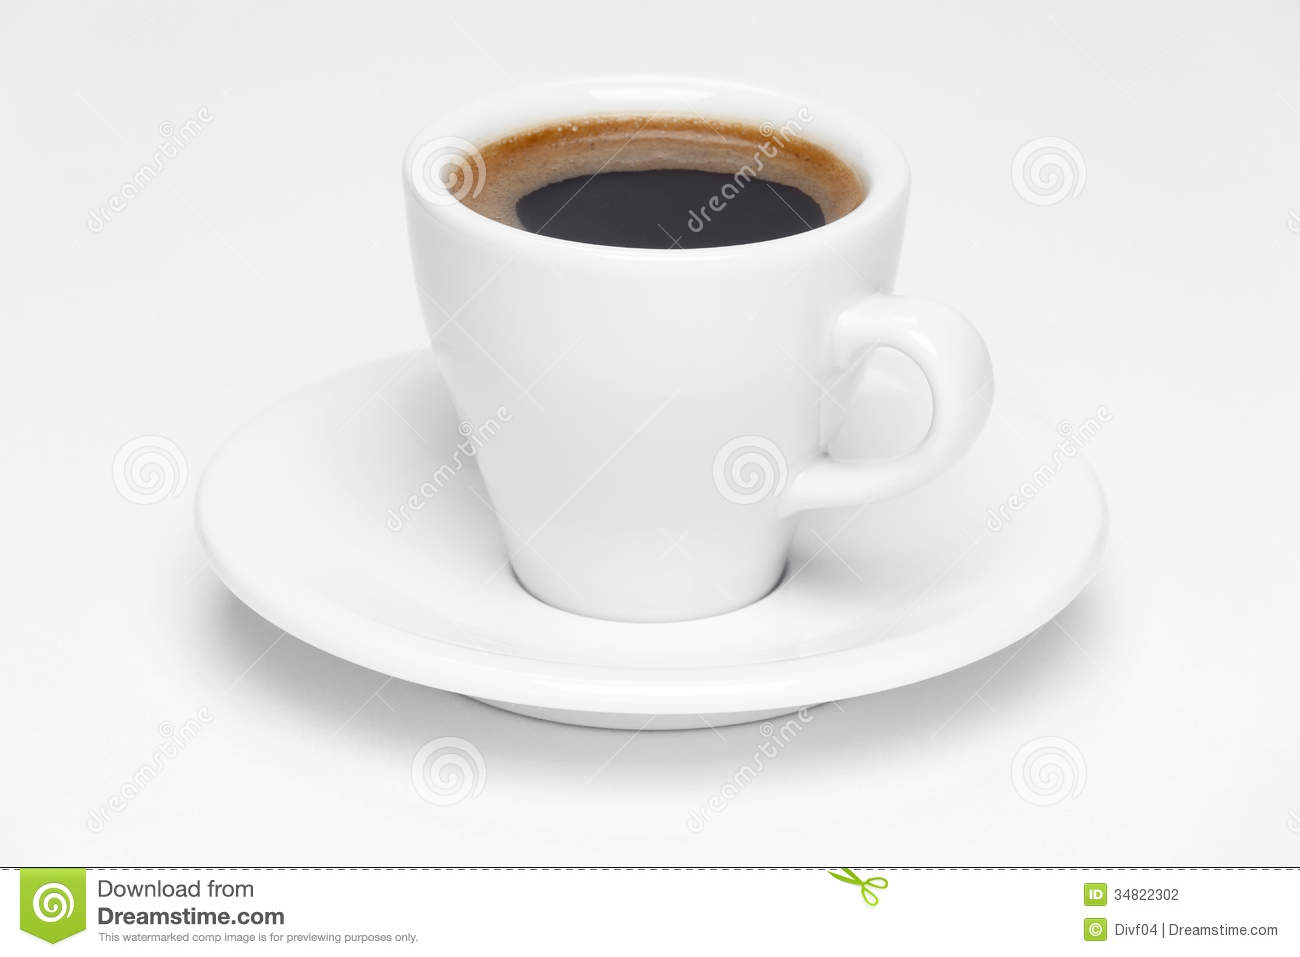 Cup Of Espresso Coffee Stock Photo Image Of White. Kitchen Island Storage. Electronics Kitchen Appliances. Modern Kitchen Island Cart. Kitchen Tiles. Kitchen Island With Range. White Kitchen Stainless Steel Appliances. Best Lighting For Under Kitchen Cabinets. Regrouting Kitchen Tile